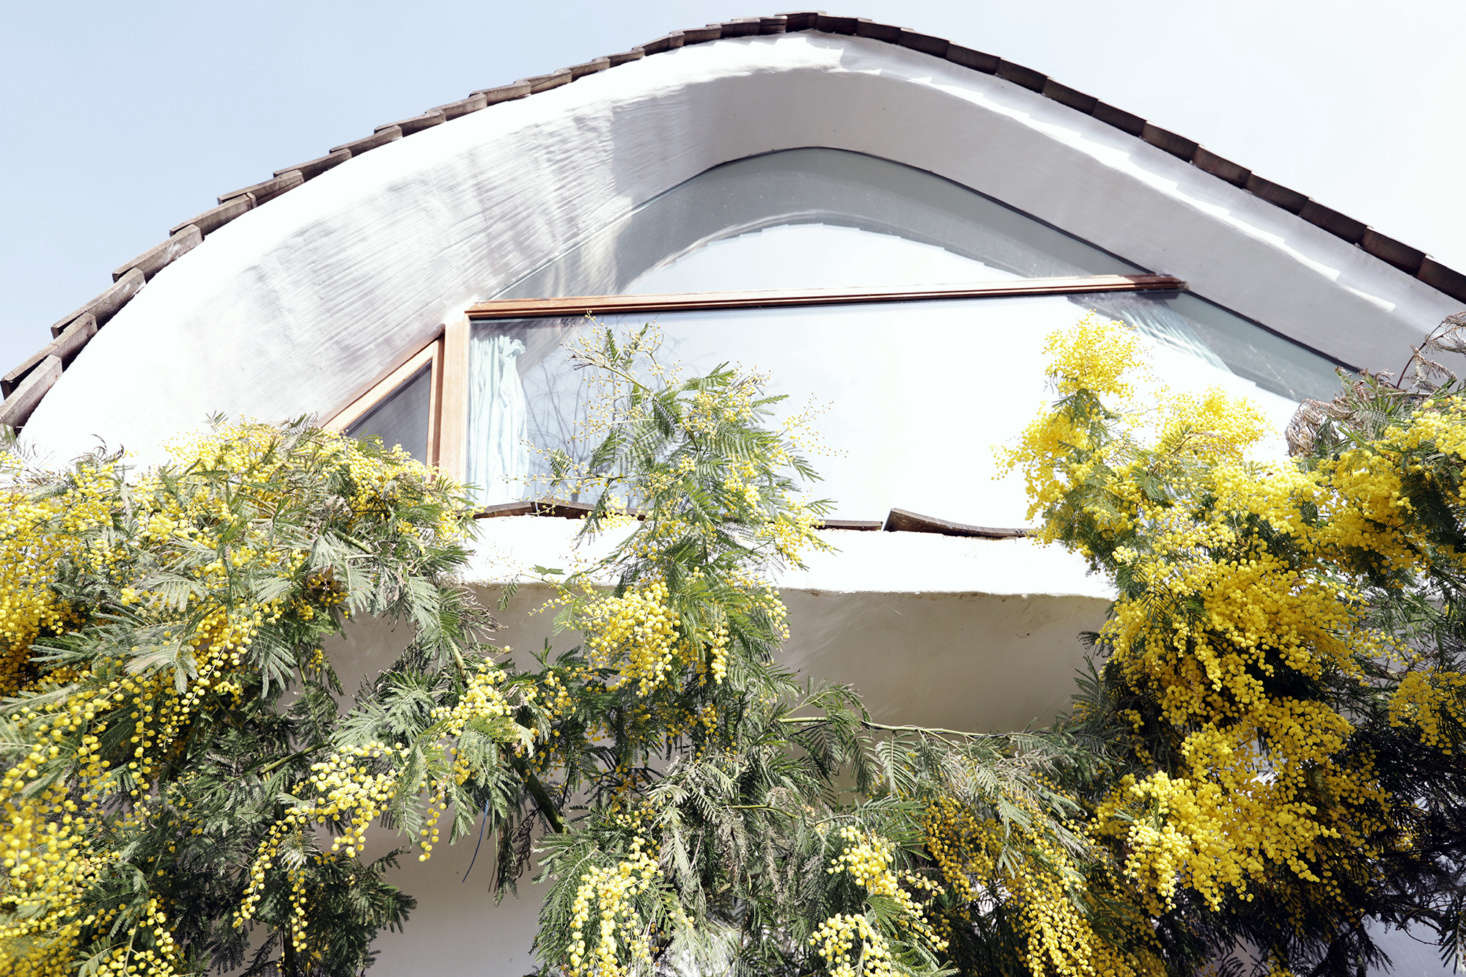 The mimosa tree in full bloom nearly reaches the top of the house.